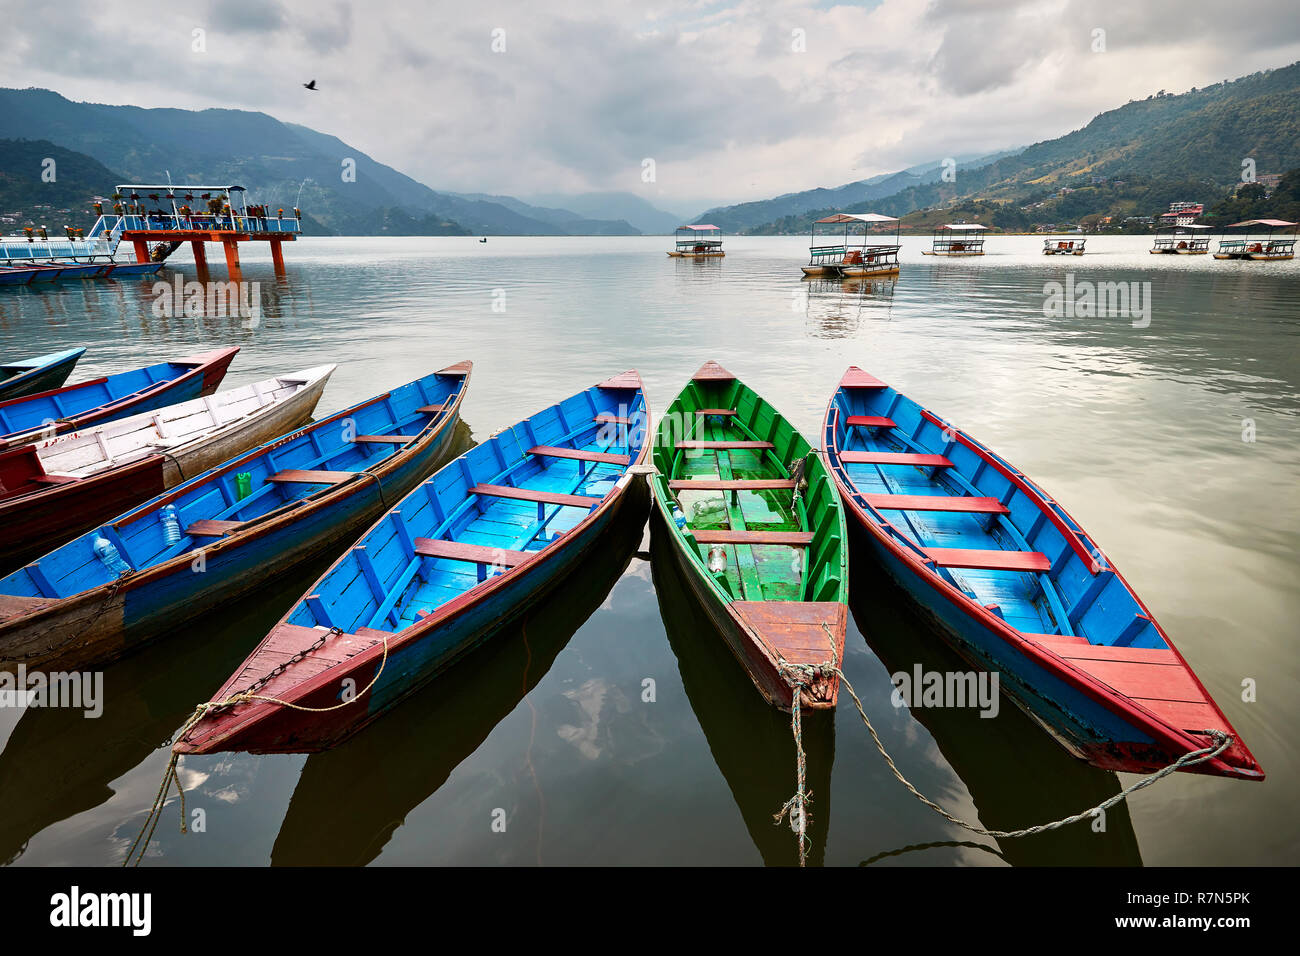 Color boats at Phewa lake shore in Pokhara, Nepal. - Stock Image